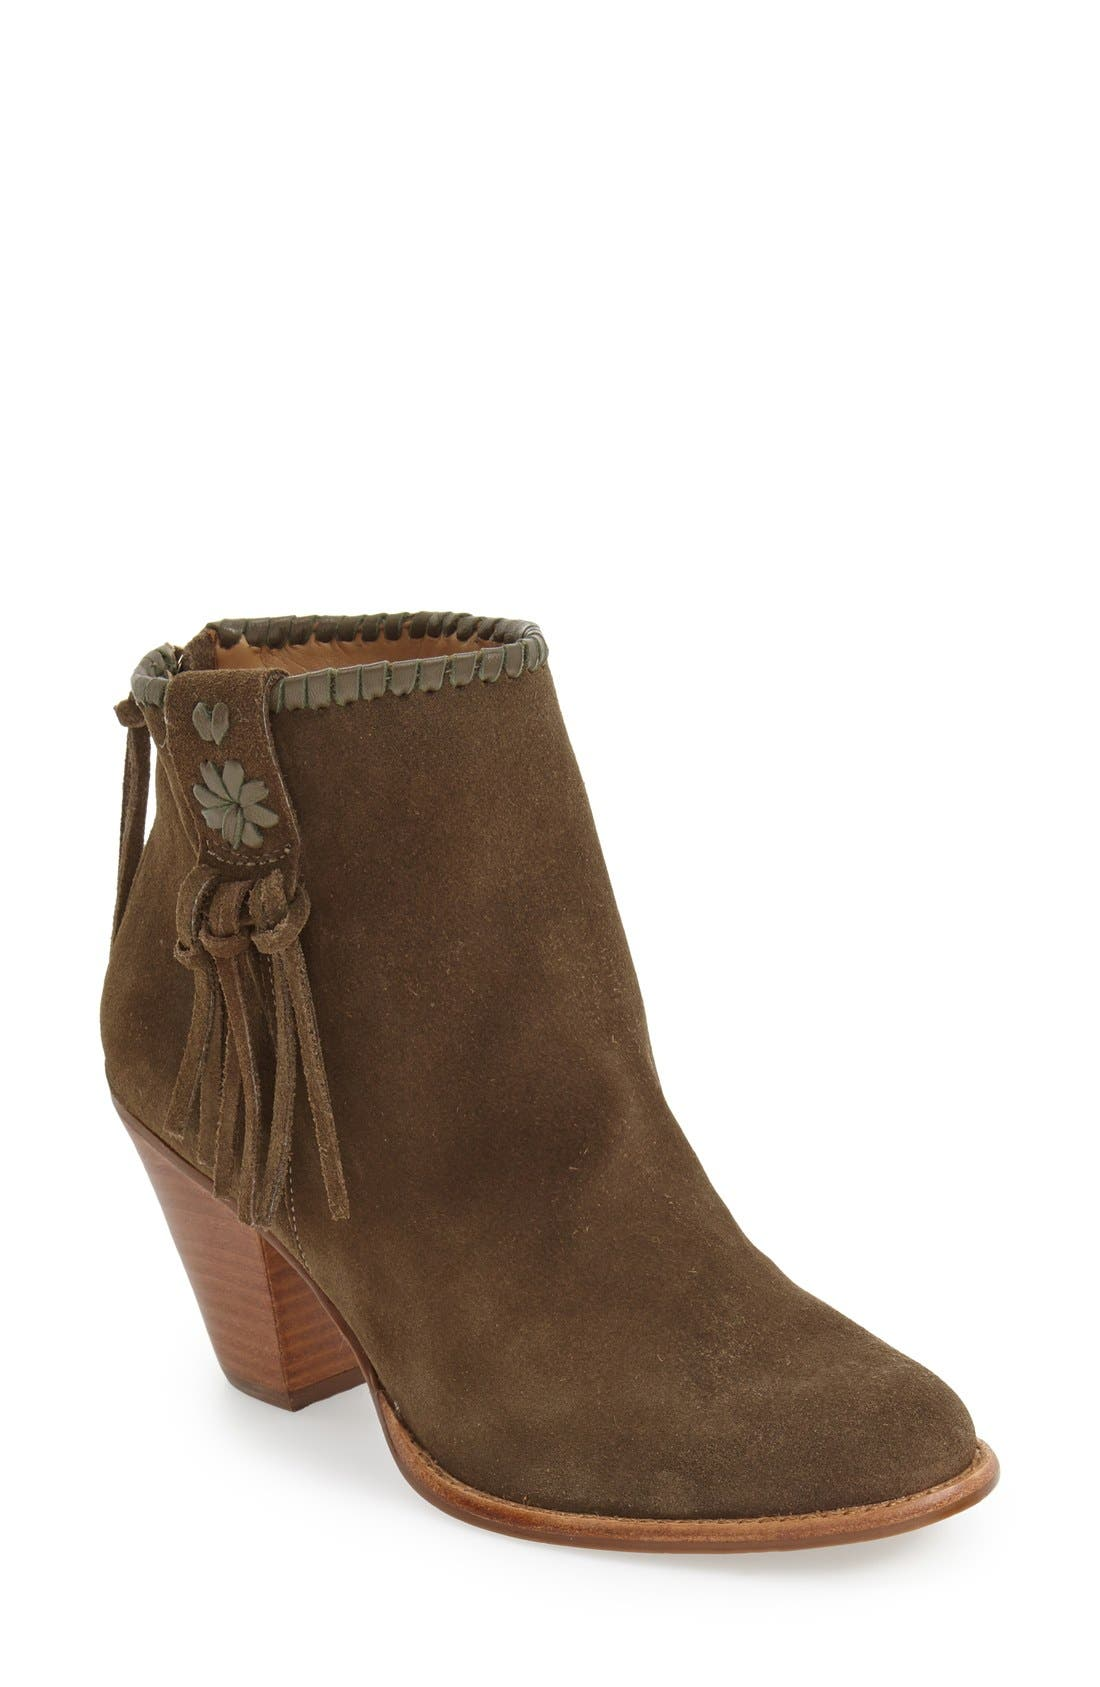 'Greer' Bootie,                             Main thumbnail 5, color,